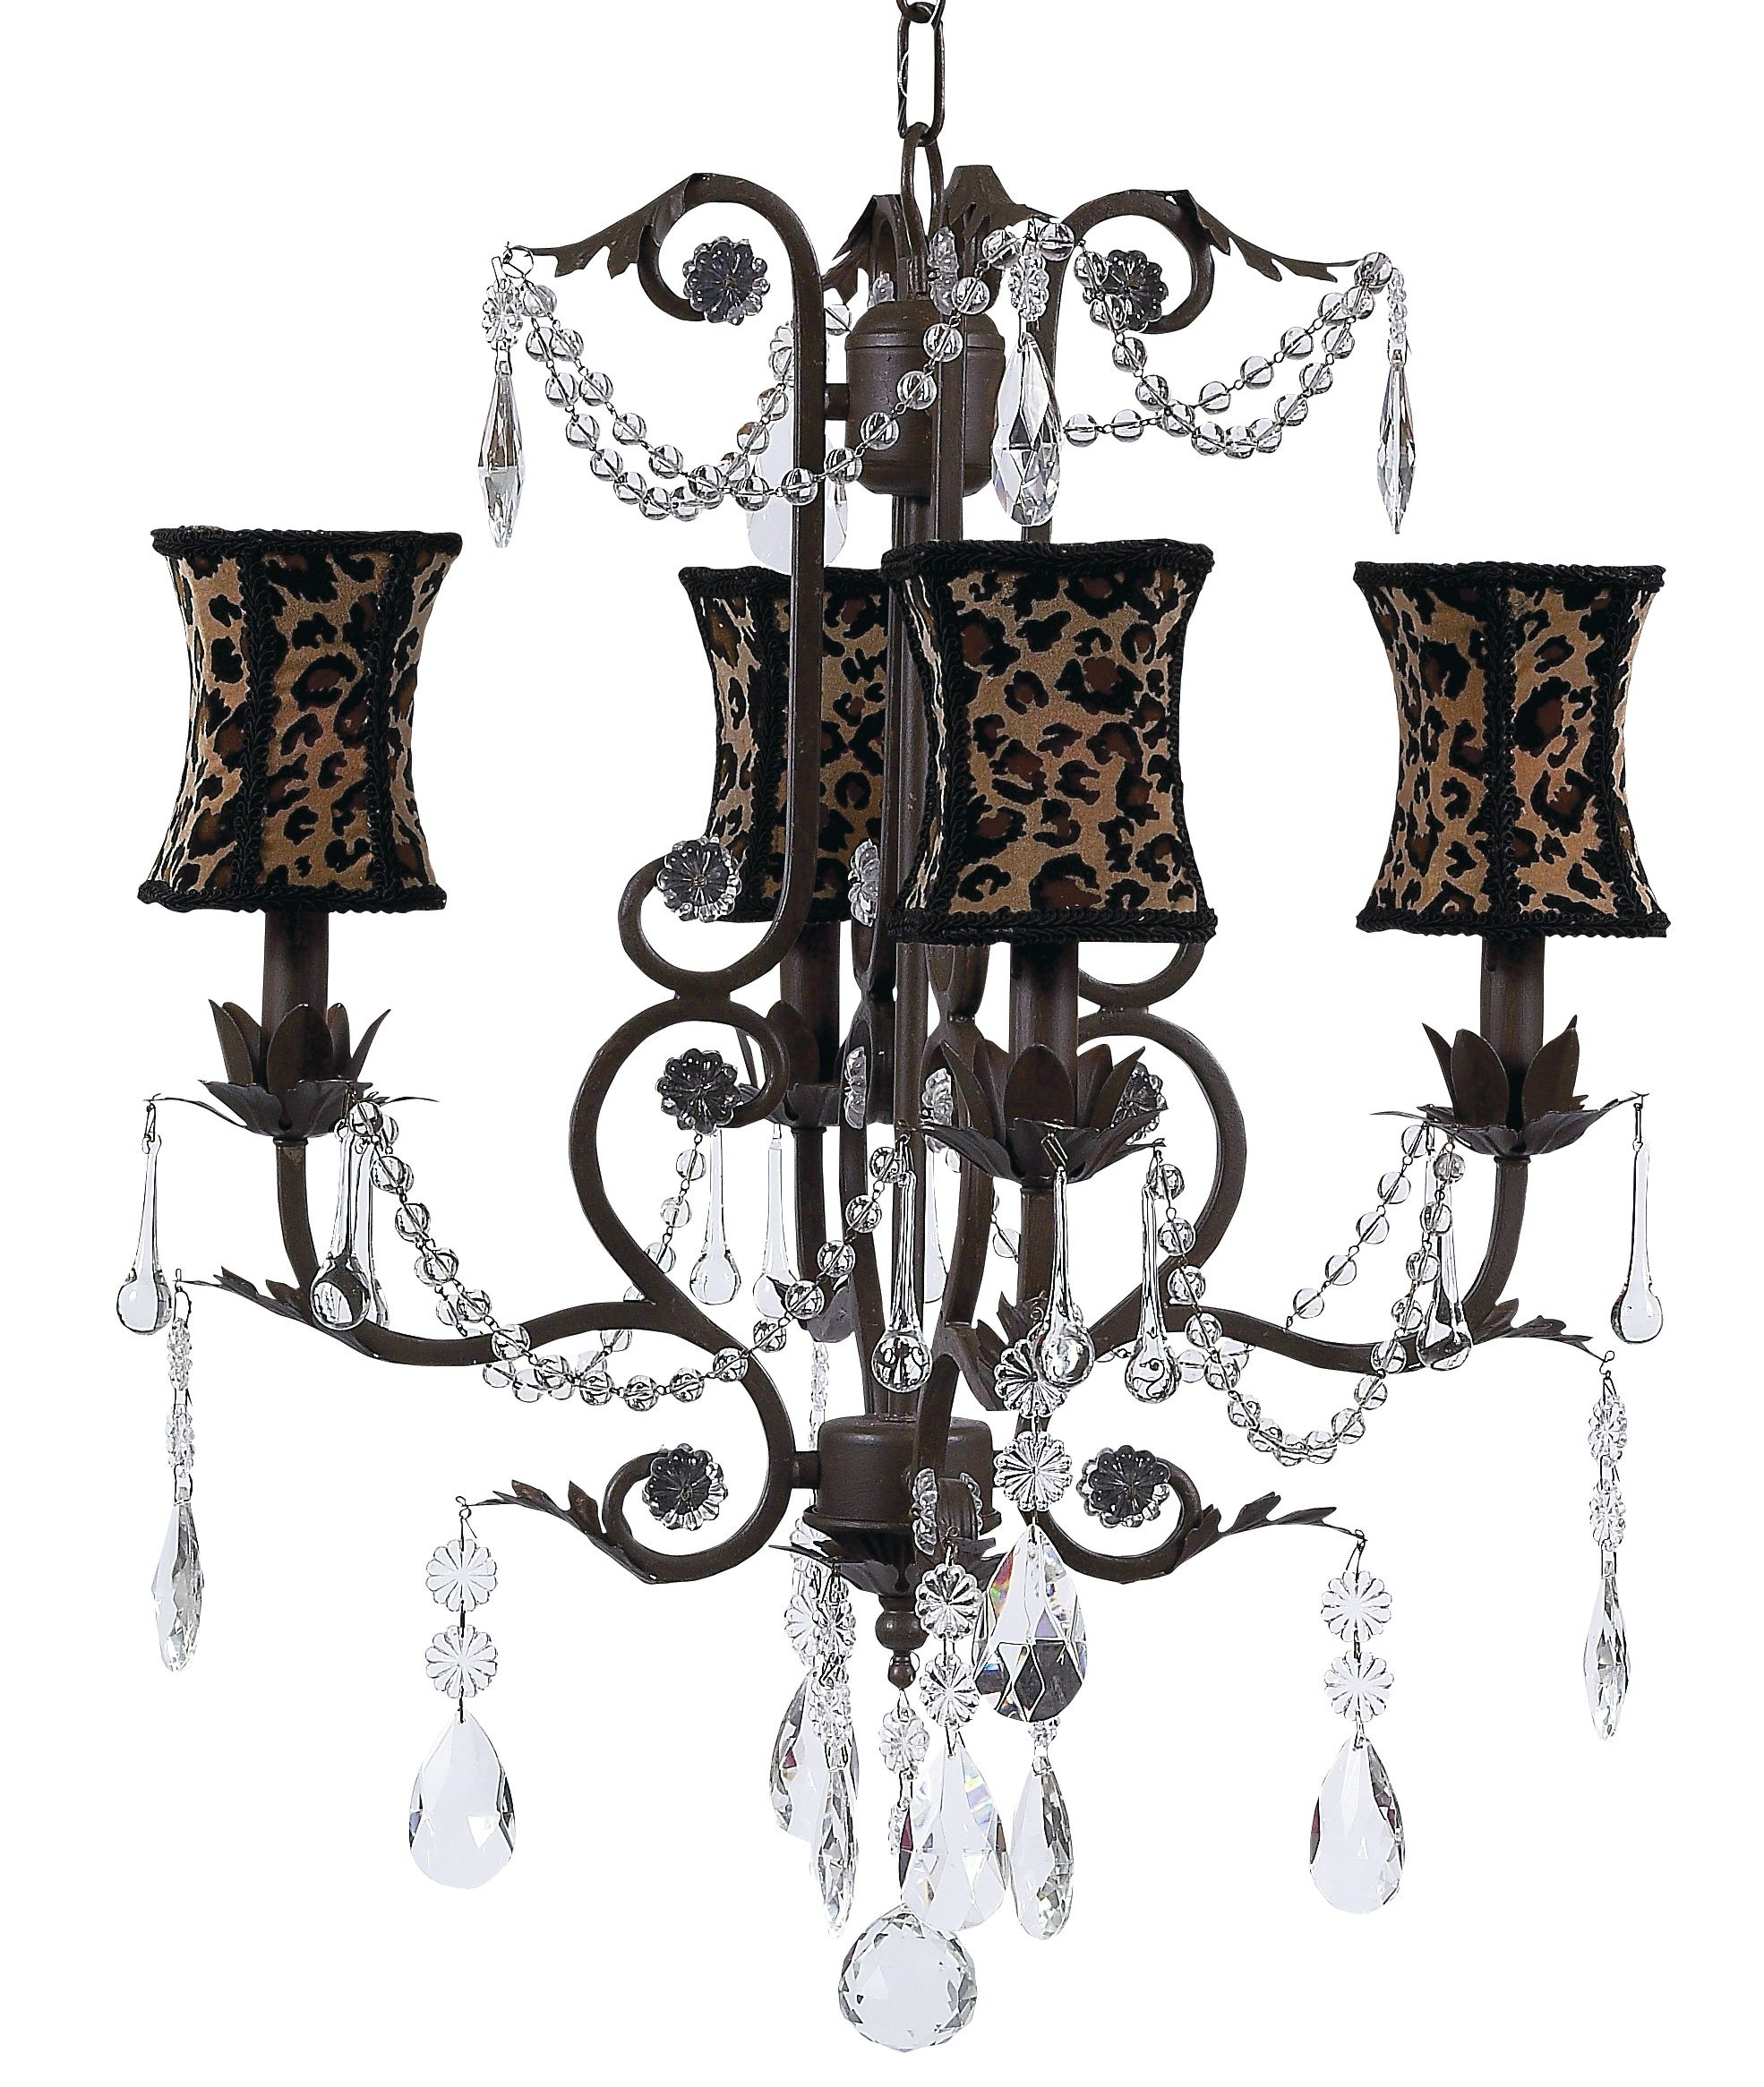 Leopard chandelier its leoparrrrrd pinterest leopards buy your leopard hourglass chandelier shade on the mocha valentino chandelier by jubilee collection here this amazing chandelier is sure to be the focal arubaitofo Choice Image